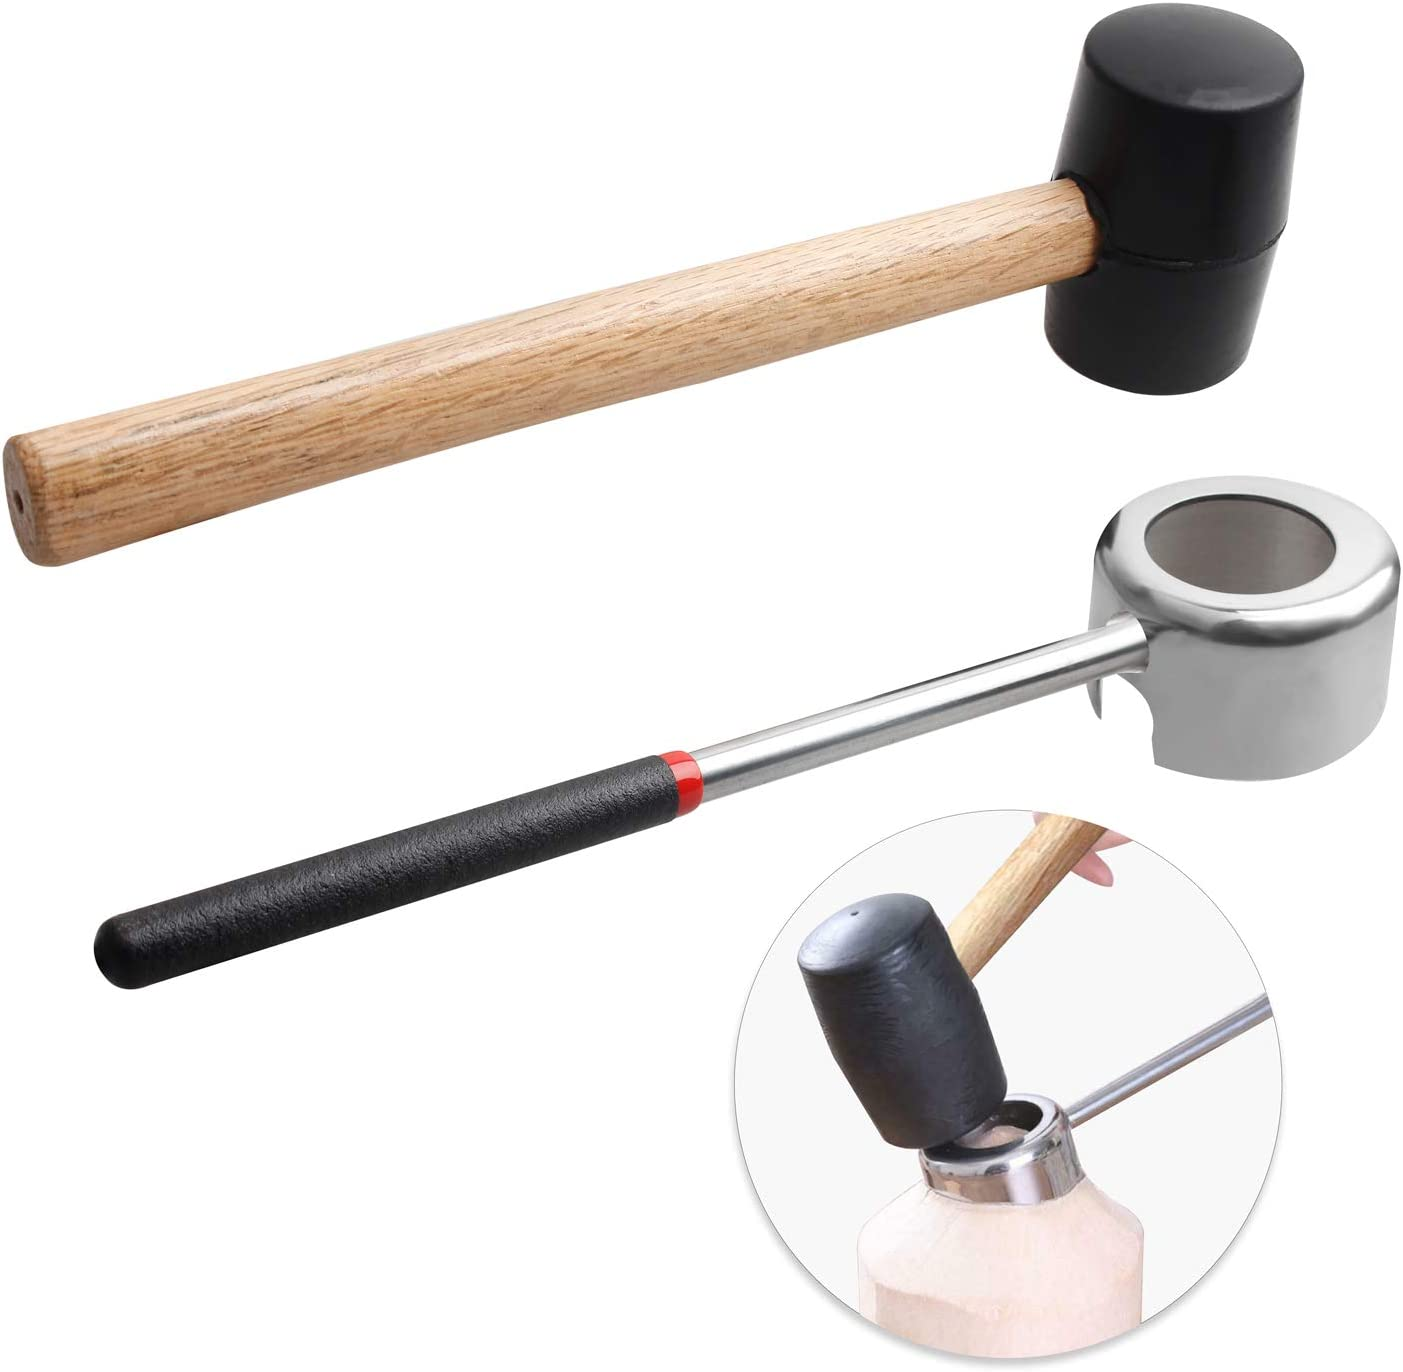 YiePhiot Coconut Opener Tools with Hammer, Super Safe & Easy to Open Young Coconuts Tool, Food Grade Stainless Steel Coconut Opener Set, Rubber Mallet with Handle